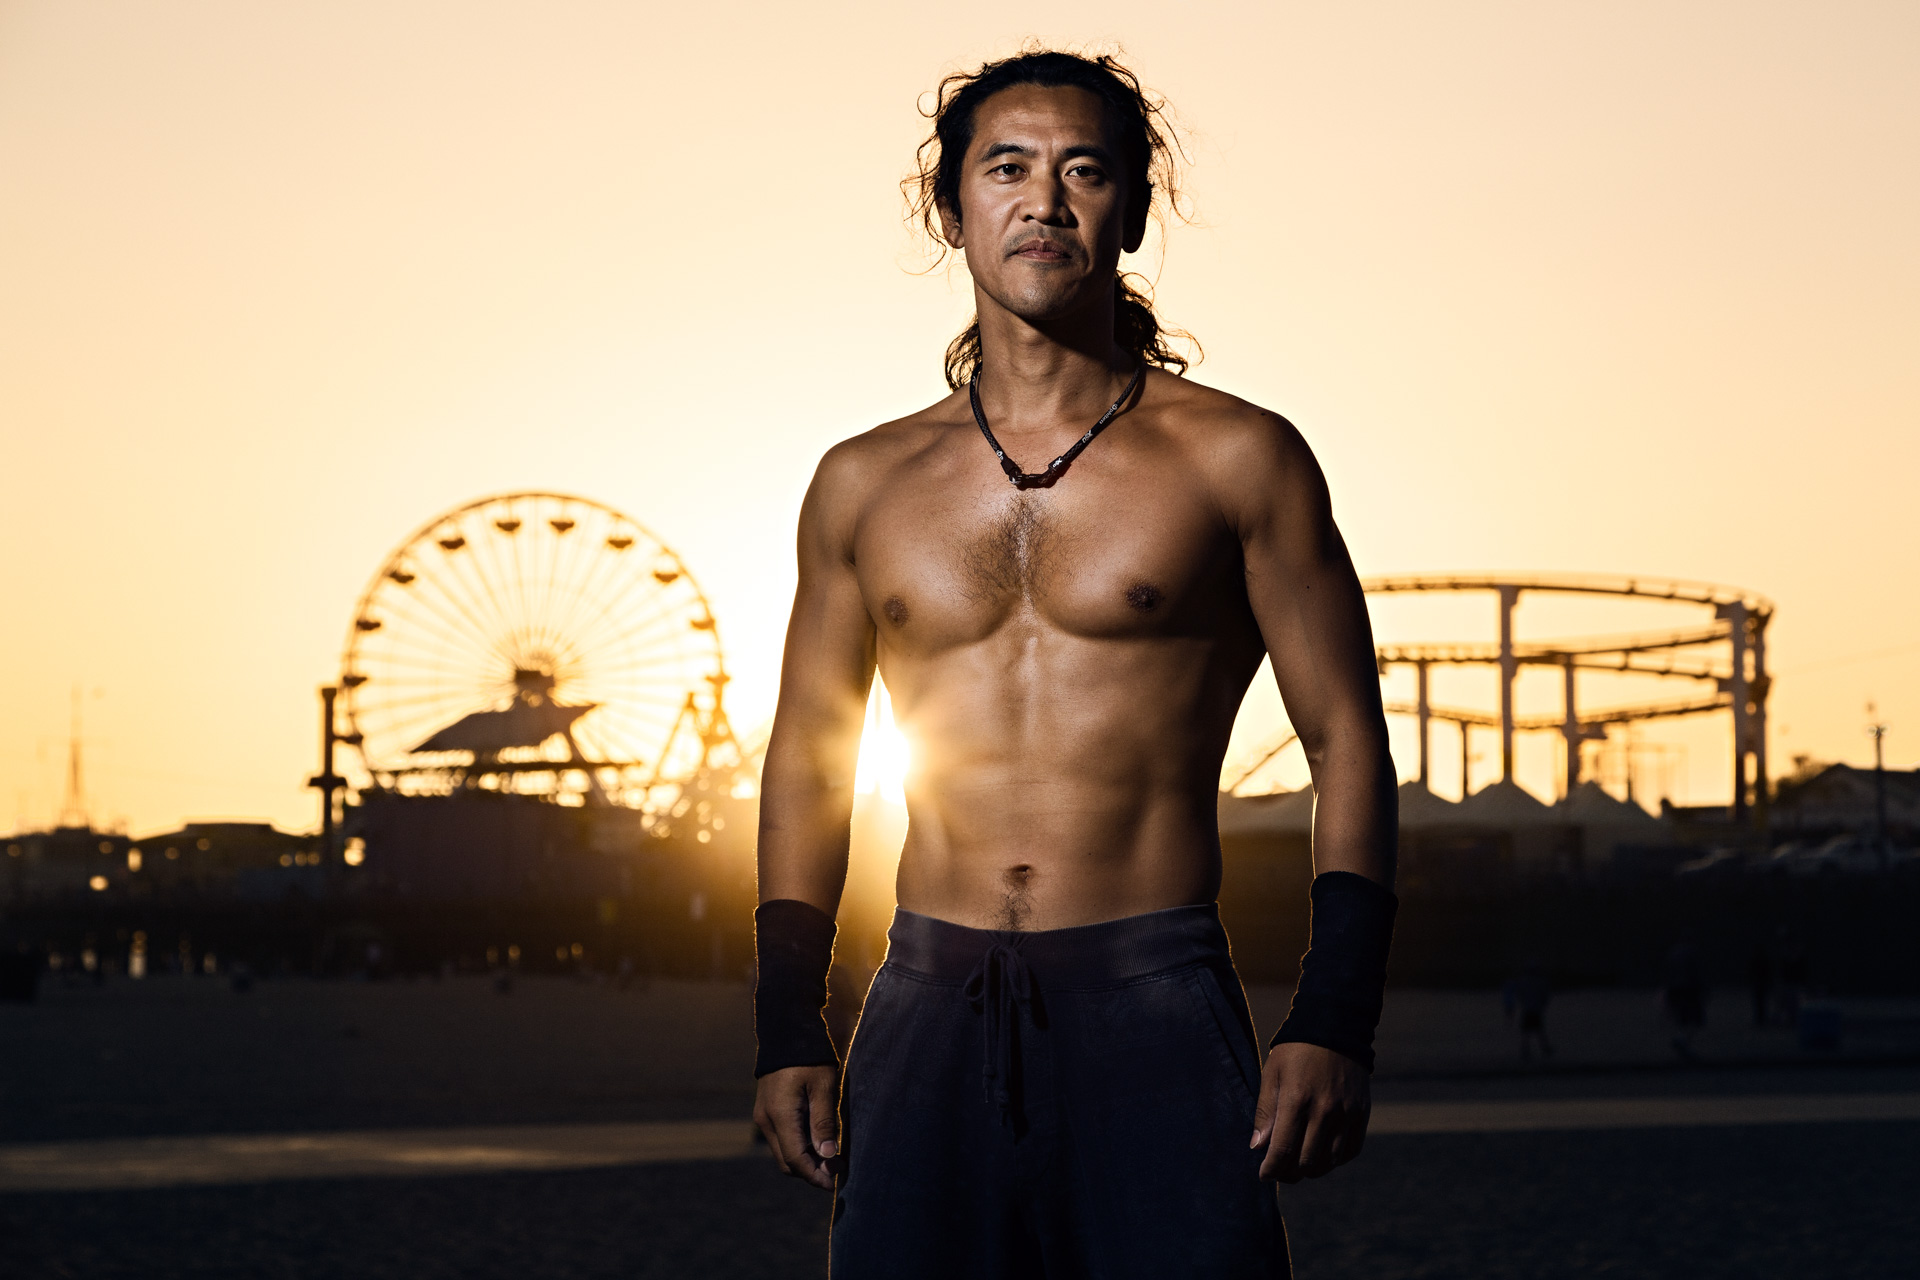 Yoshi, actor and stunt, after his workout in Santa Monica